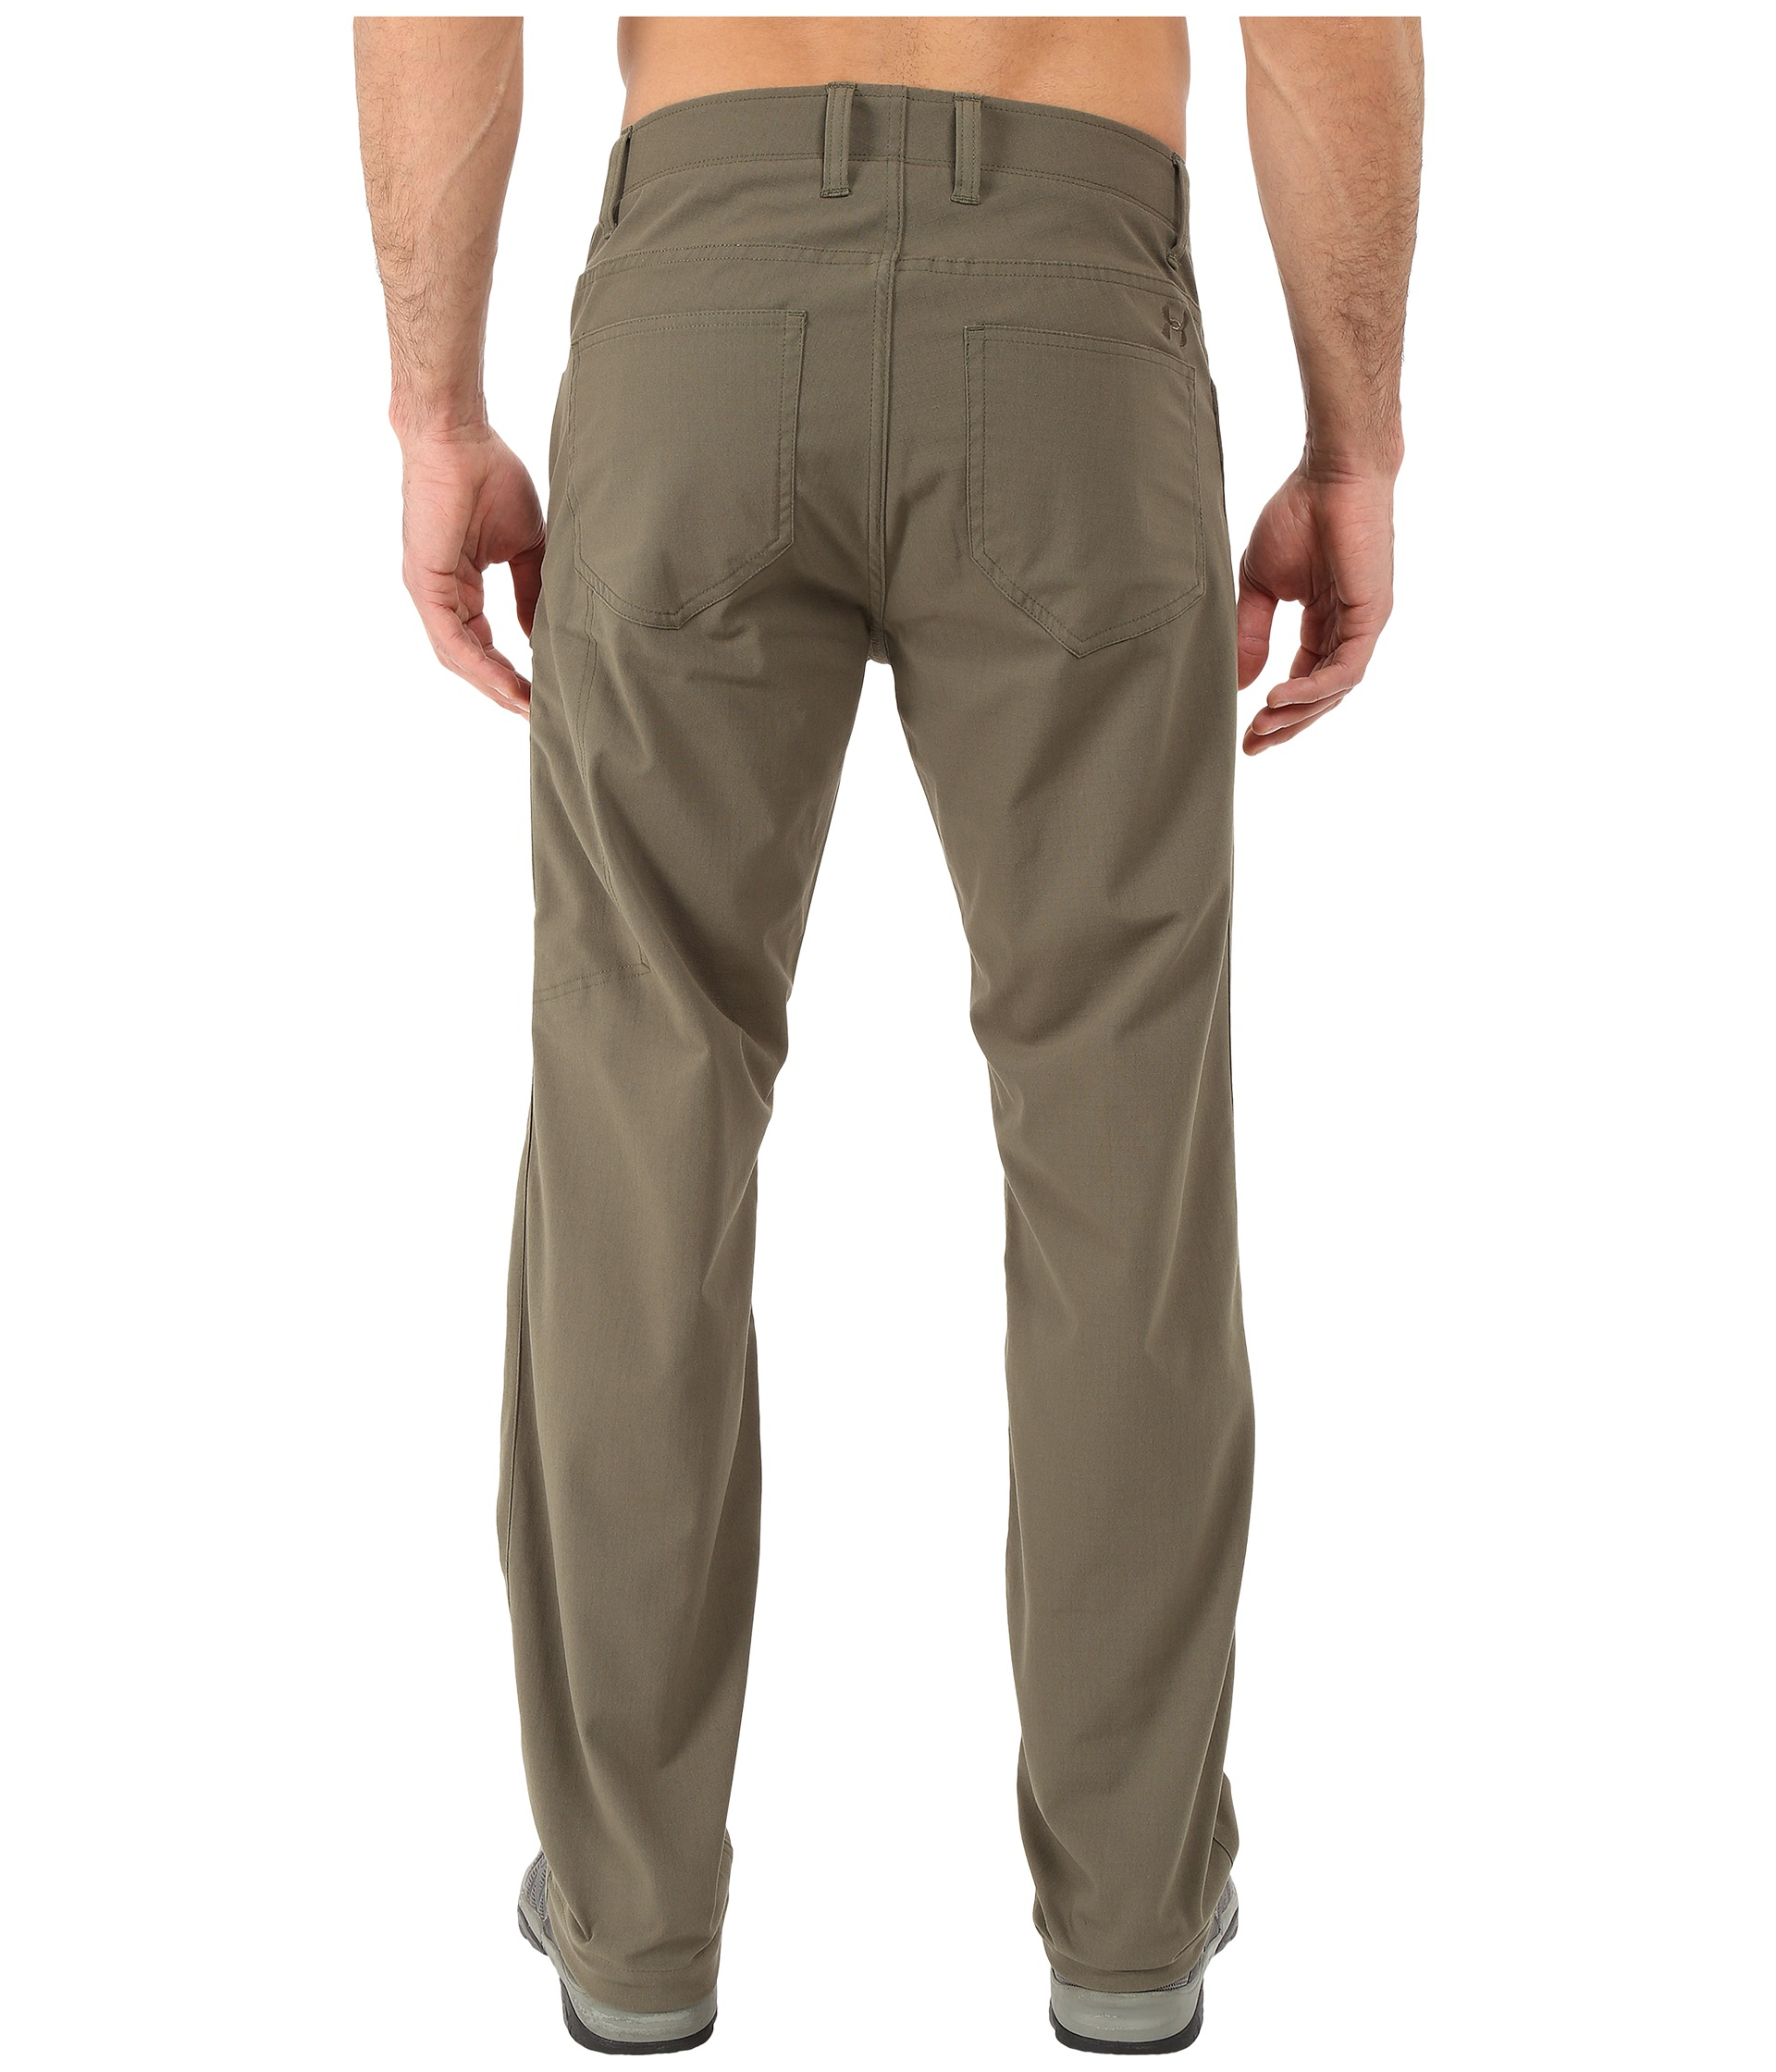 under armour storm pants silver men cheap   OFF42% The Largest Catalog  Discounts fccfeed7c07db